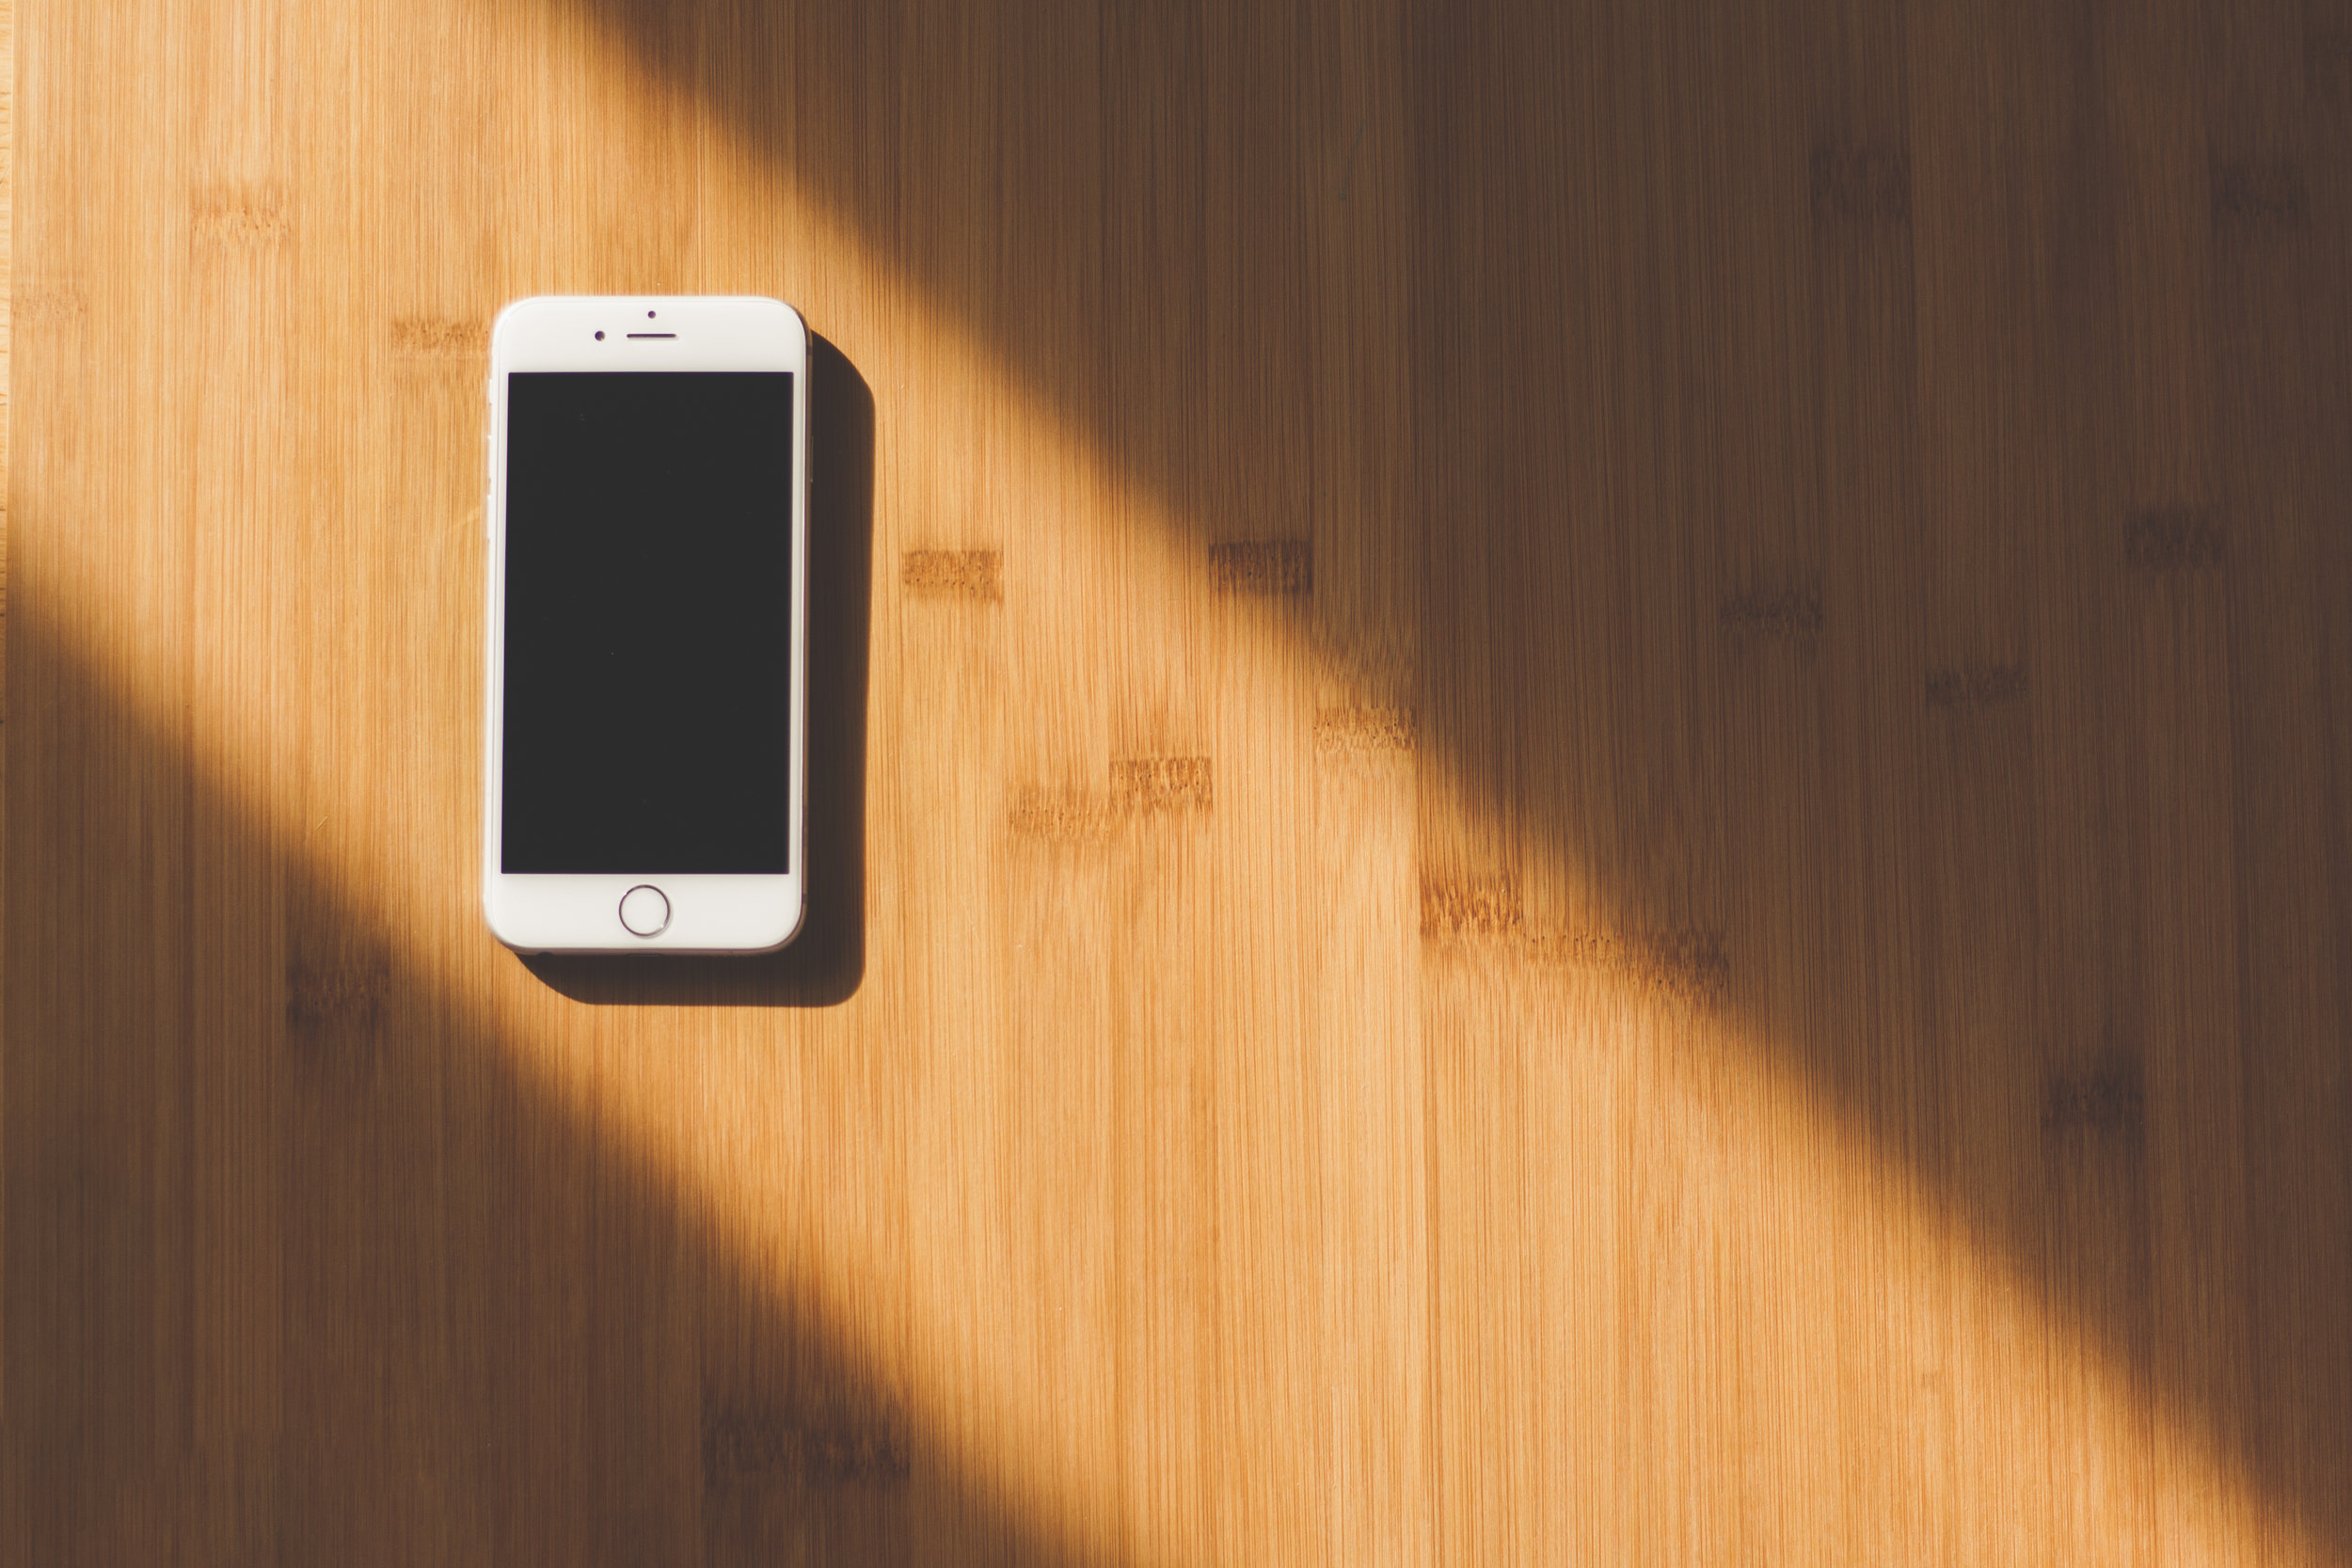 Smart Phone iphone 7 in light wood background